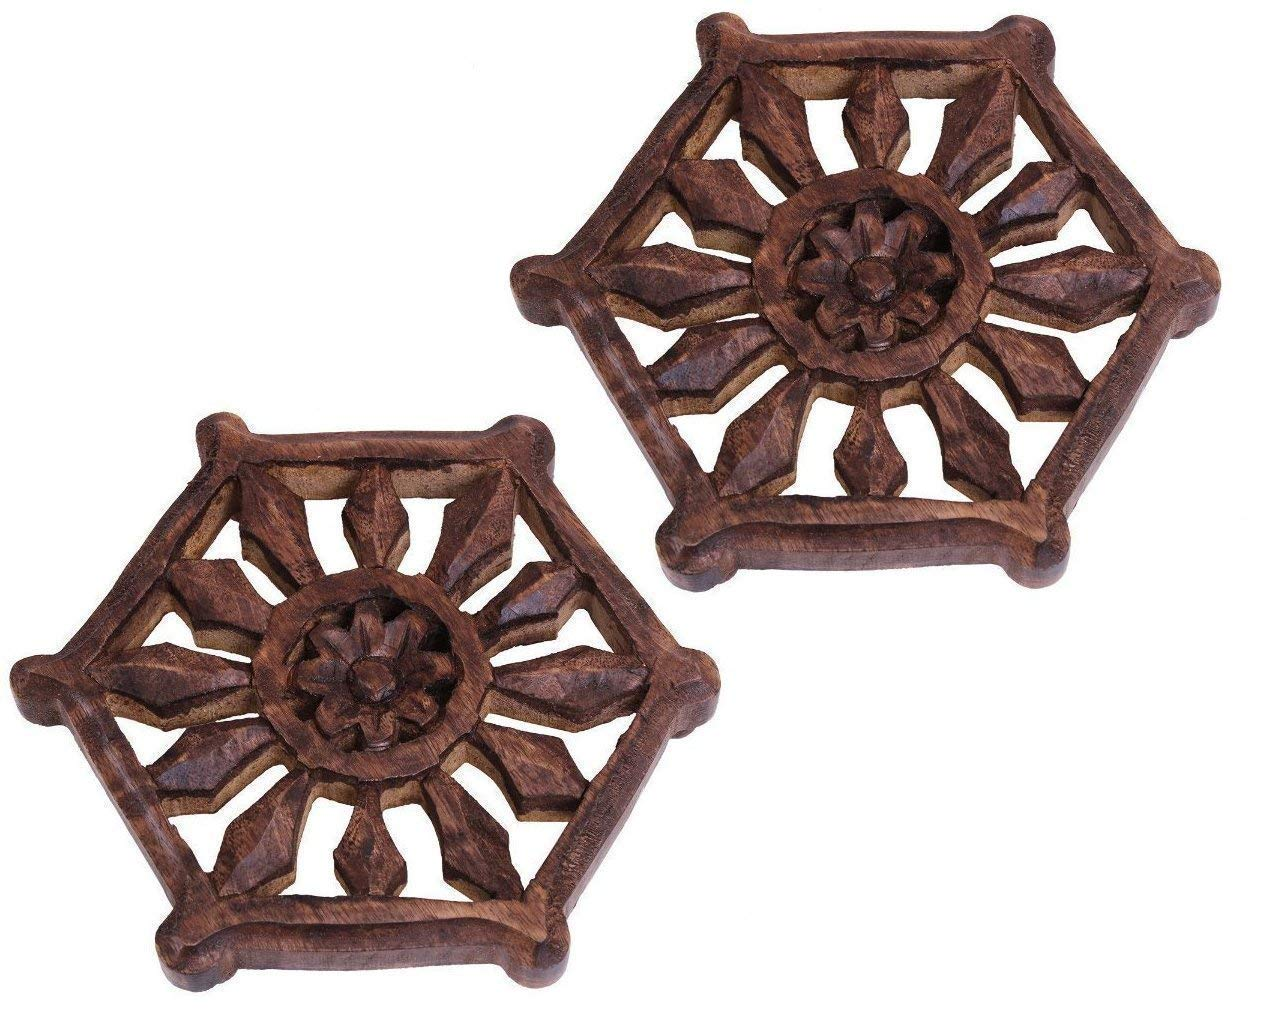 storeindya Trivet Kitchen Hot Dishes Dining Table Accessories Floral Painted Mango Wood Kitchen Tools Gadgets (Brown) (Design 3)